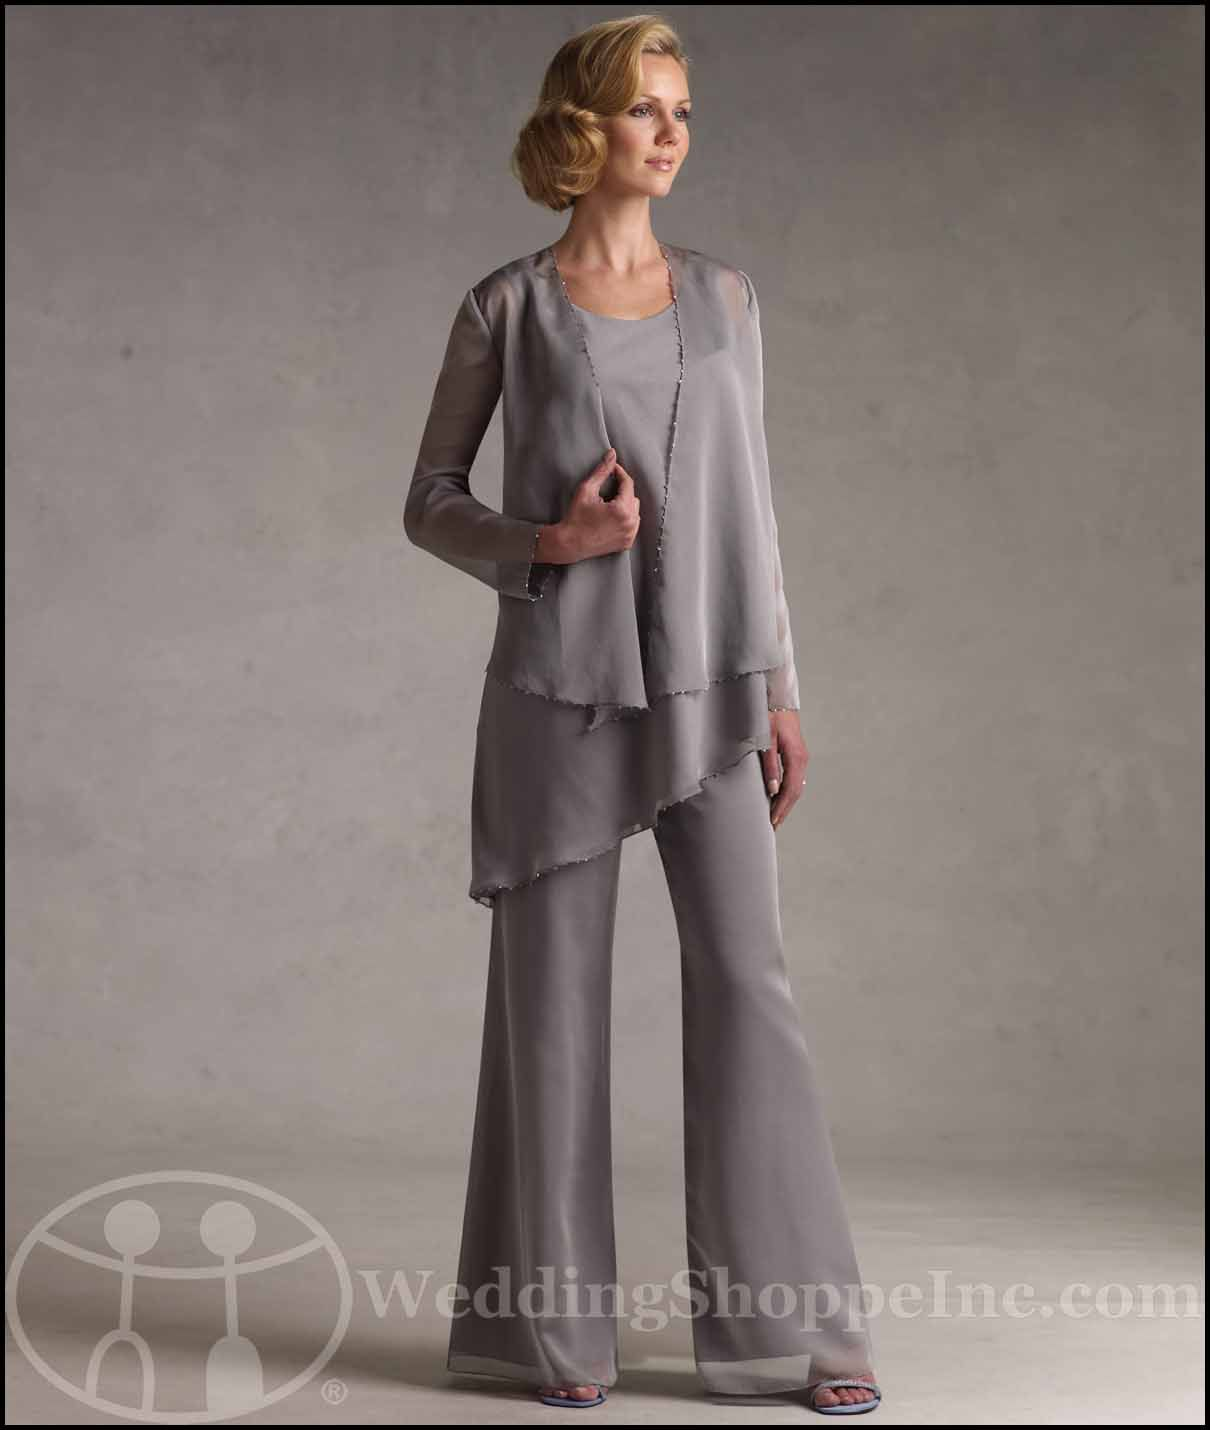 Mother of the Bride Pant Suits at the | Wedding shoppe, Feminine ...